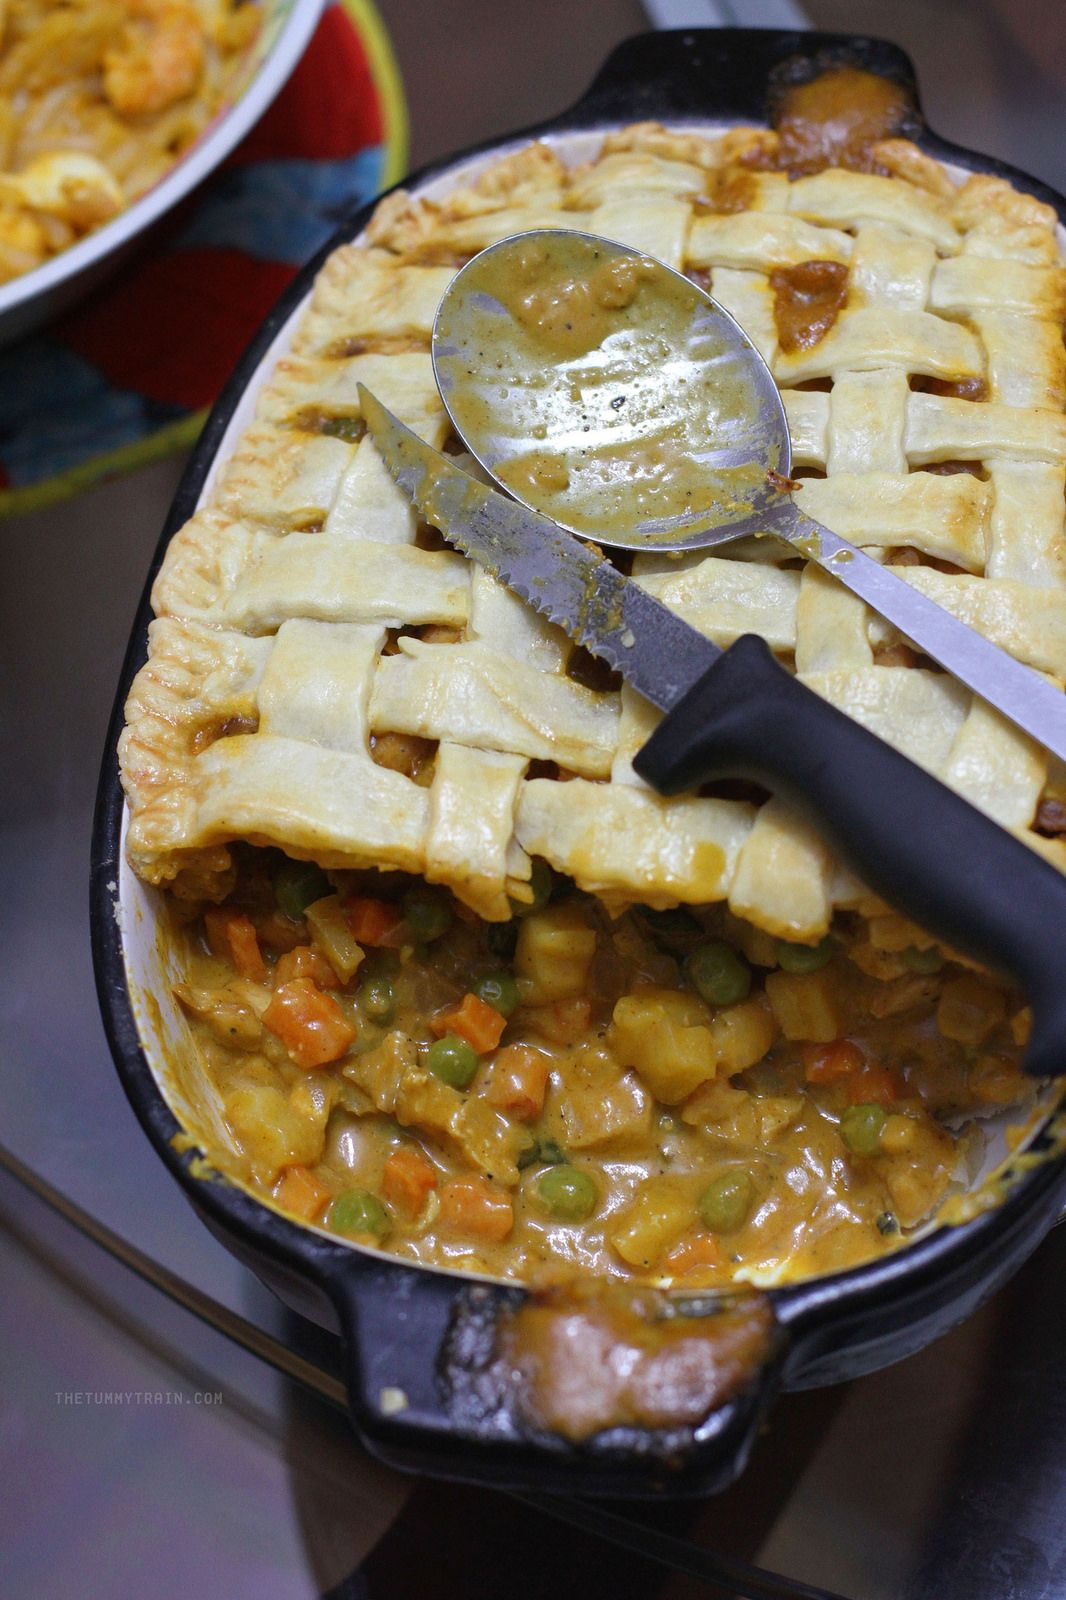 Redefining the classic chicken pot pie by using chicken curry instead. Made more perfect with a lattice top, served inside a KitchenAid ceramic casserole!